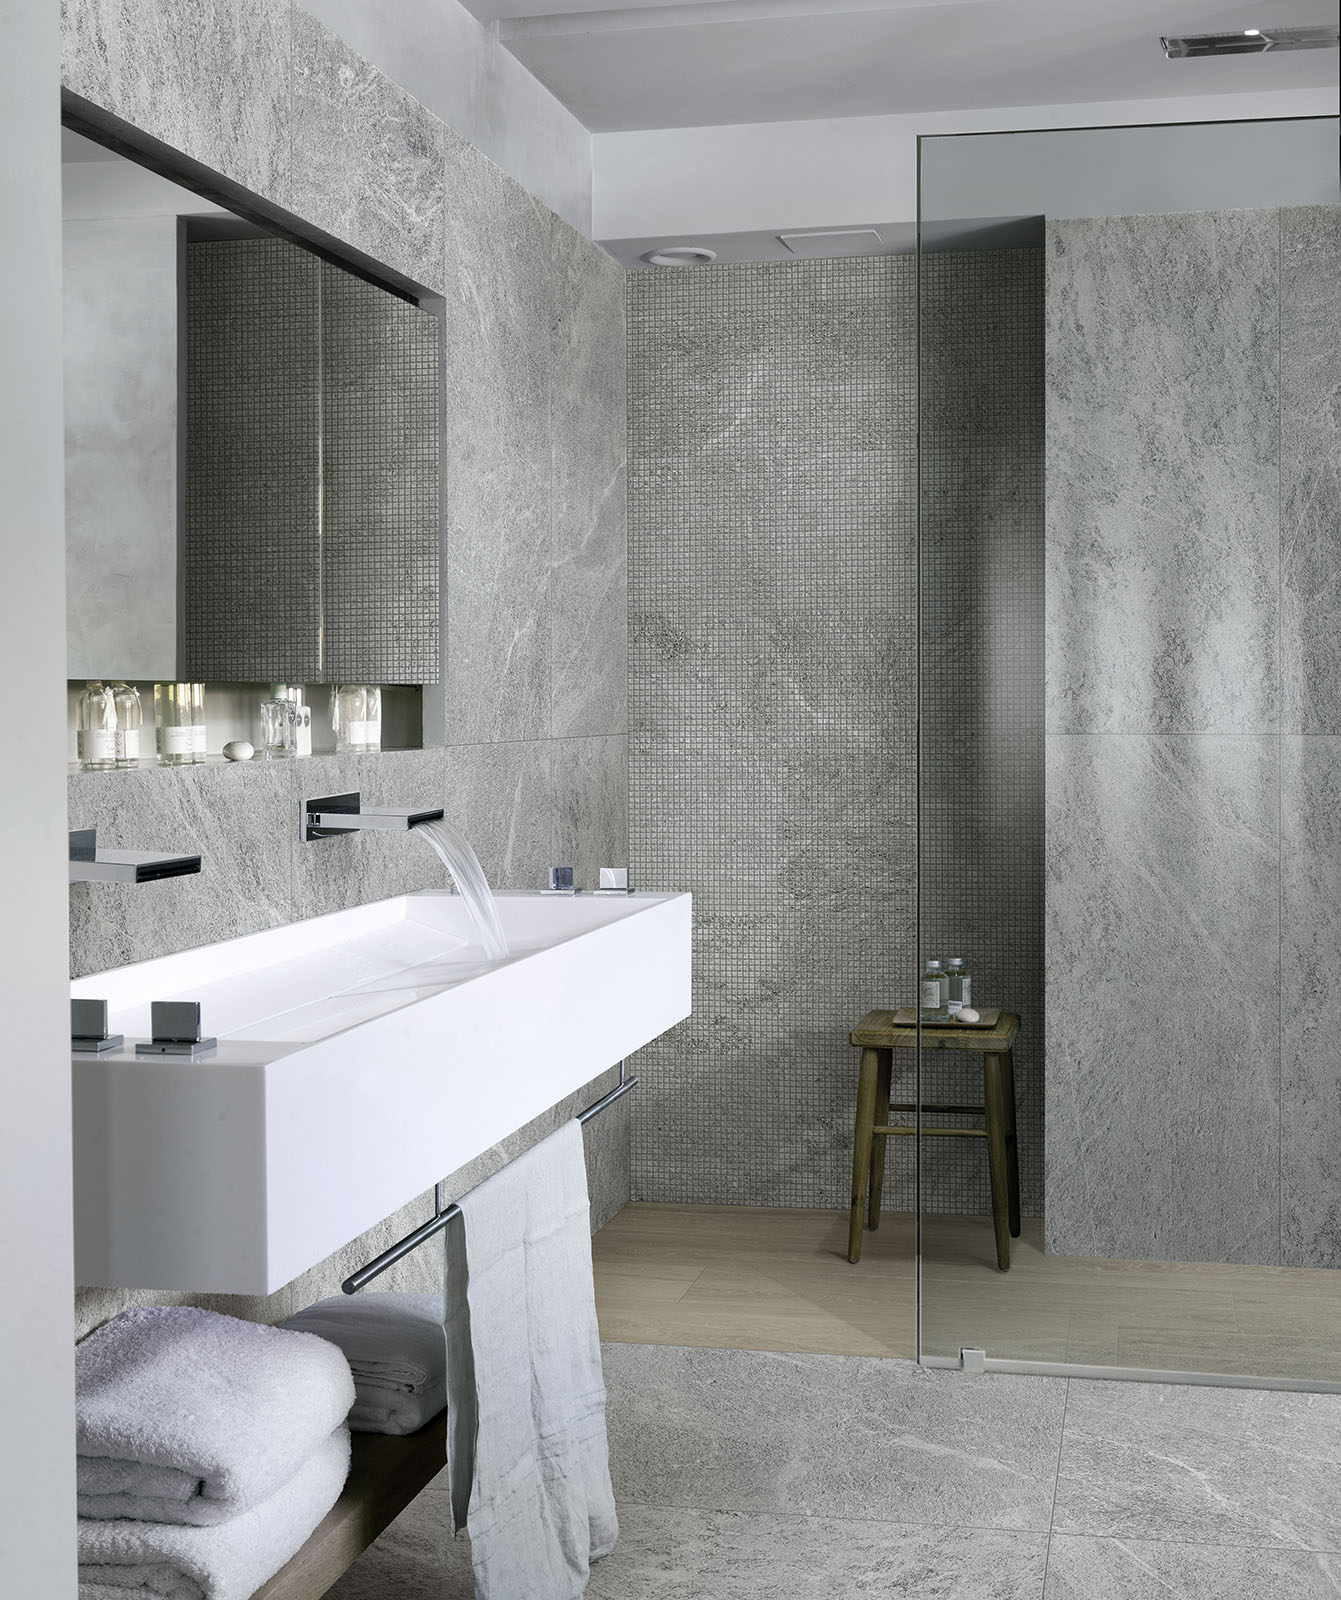 Bathroom flooring ceramic and porcelain stoneware marazzi for Carrelage salle de bain gris 30x60